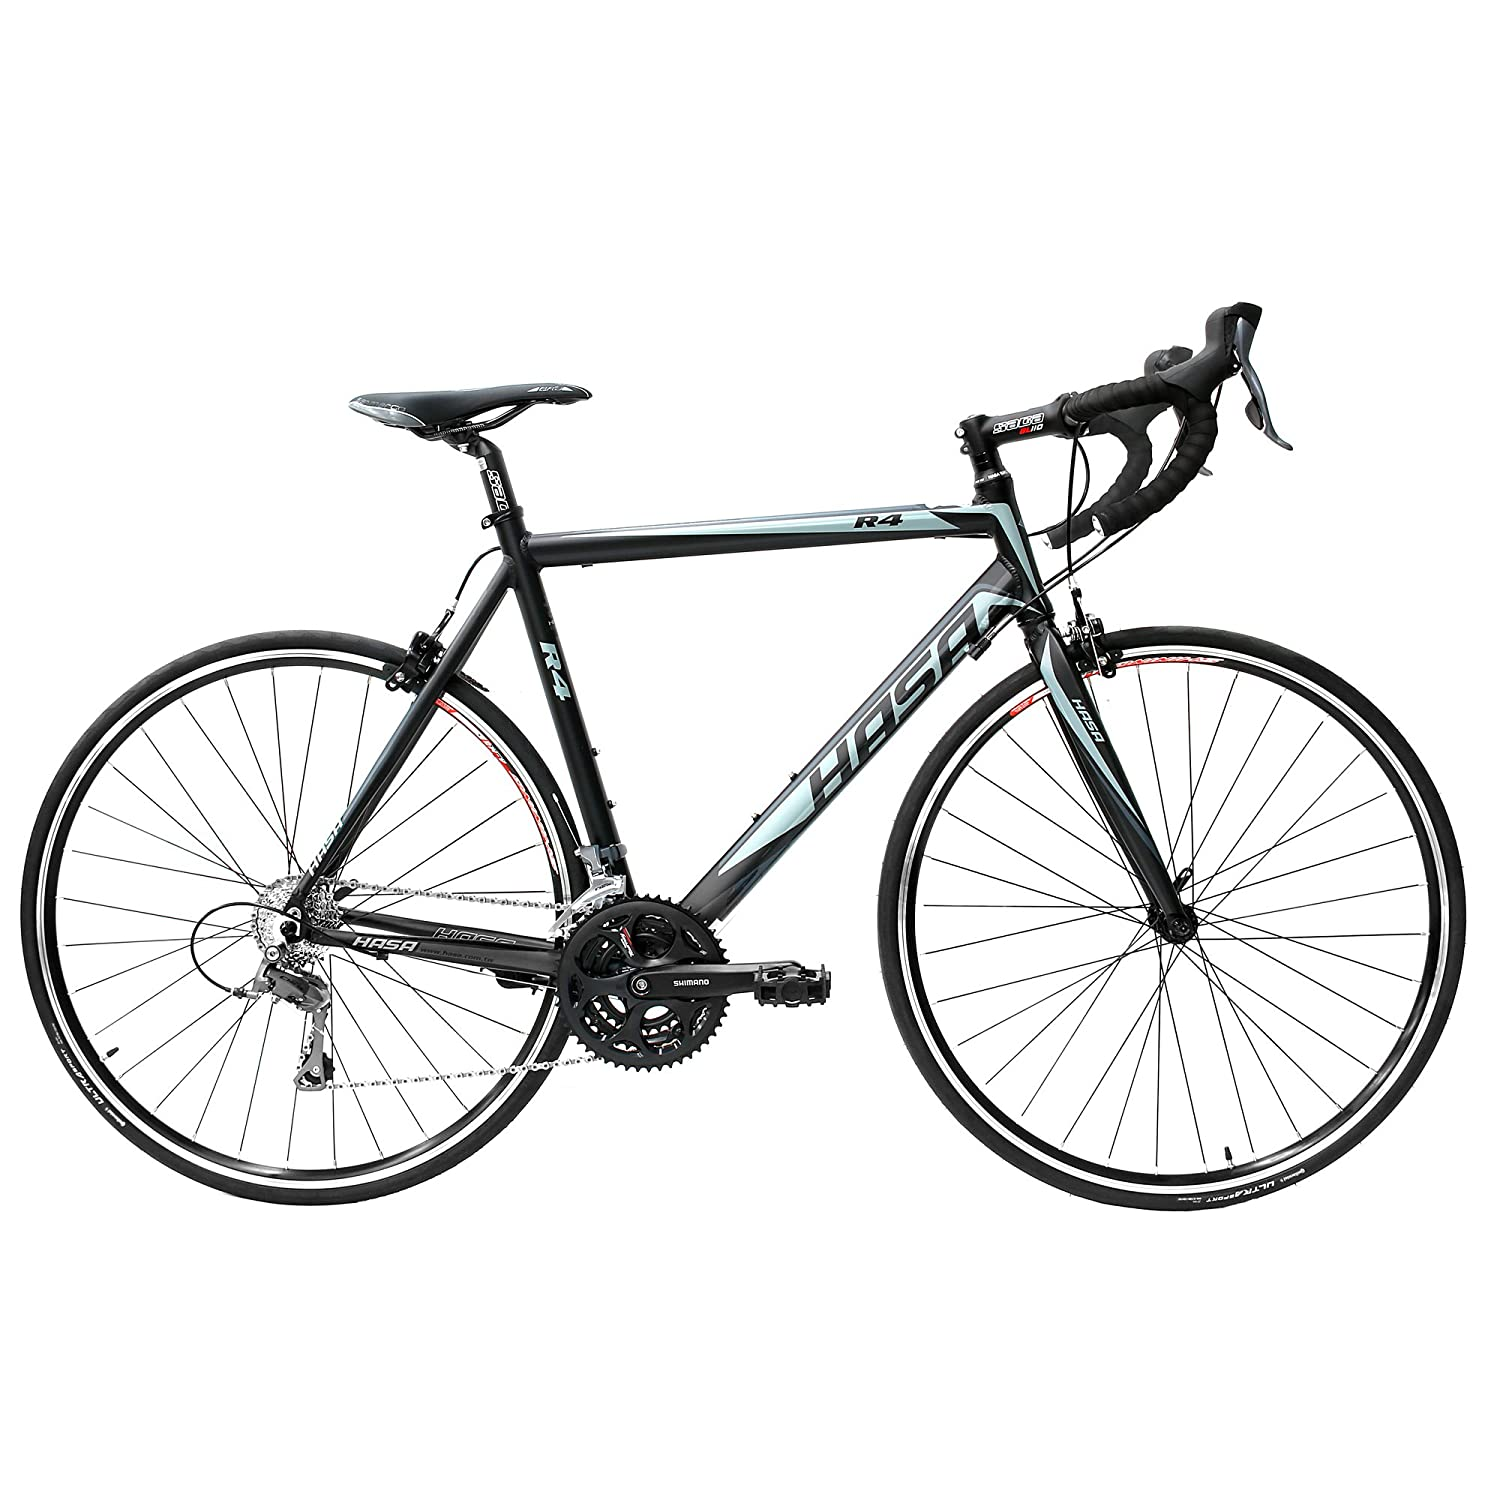 The Best Road Bikes Under $500 3